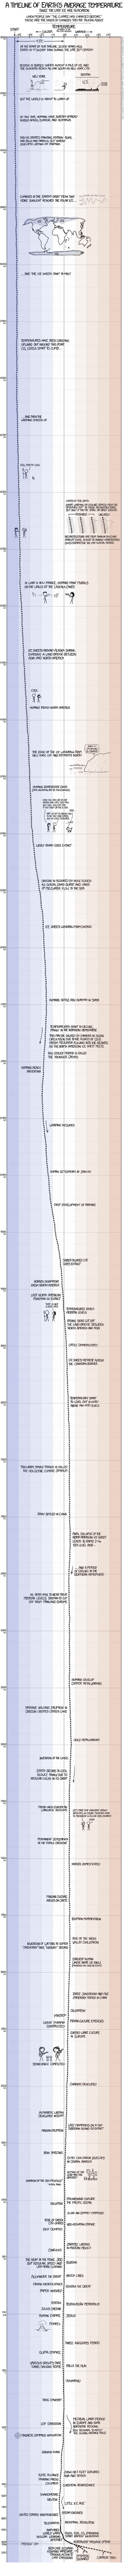 Earth's 20,000 years Temperature Timeline infographic